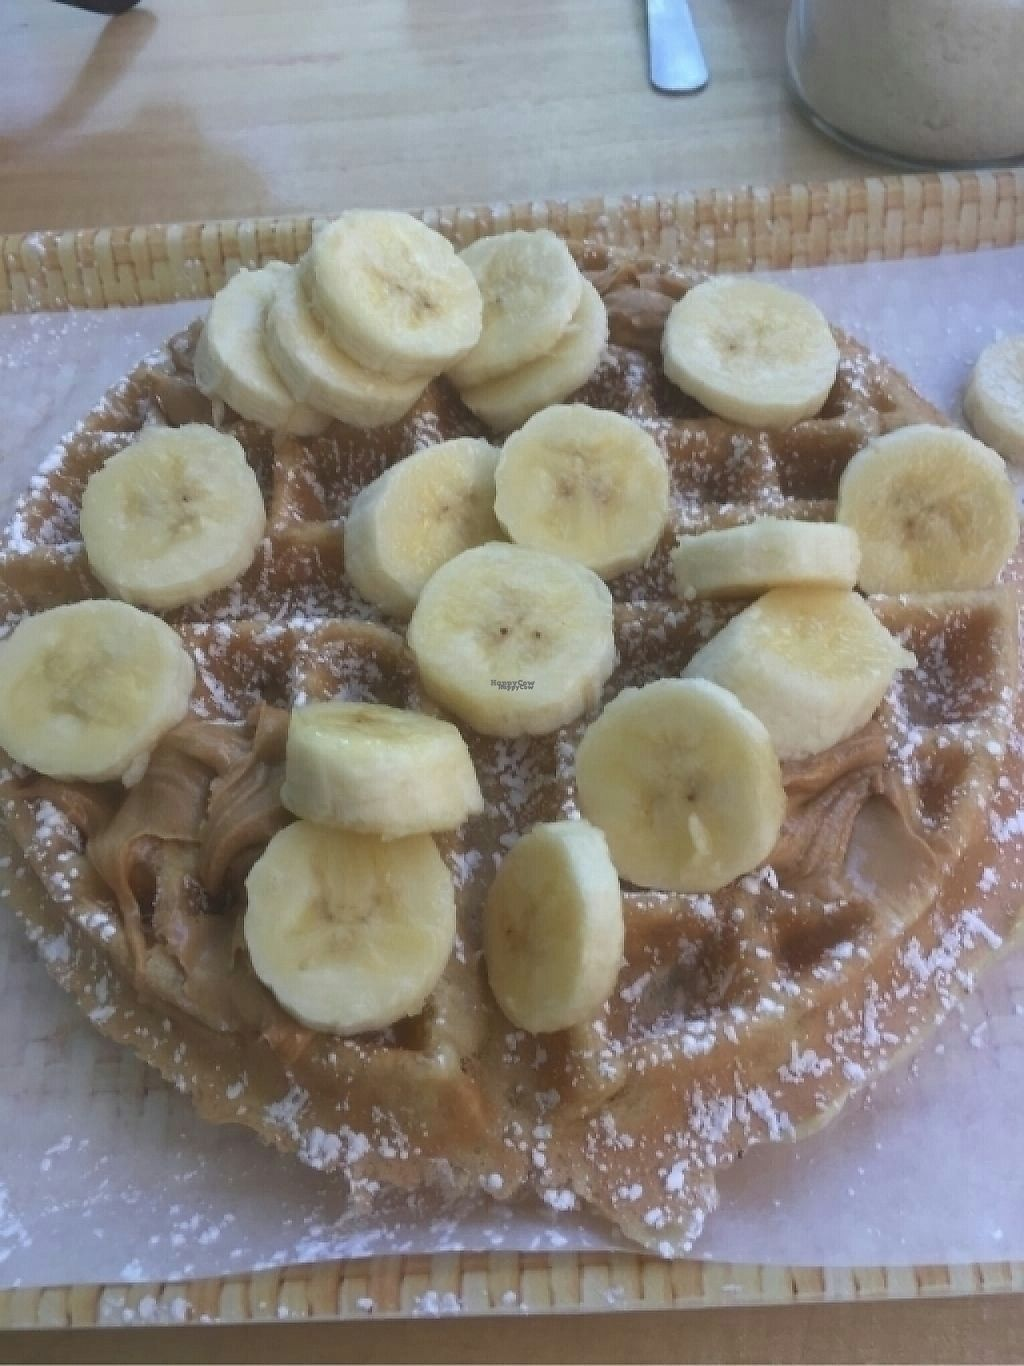 """Photo of Waffle Monkey  by <a href=""""/members/profile/edwardboyle"""">edwardboyle</a> <br/>Peanut butter and banana <br/> January 18, 2017  - <a href='/contact/abuse/image/75873/213085'>Report</a>"""